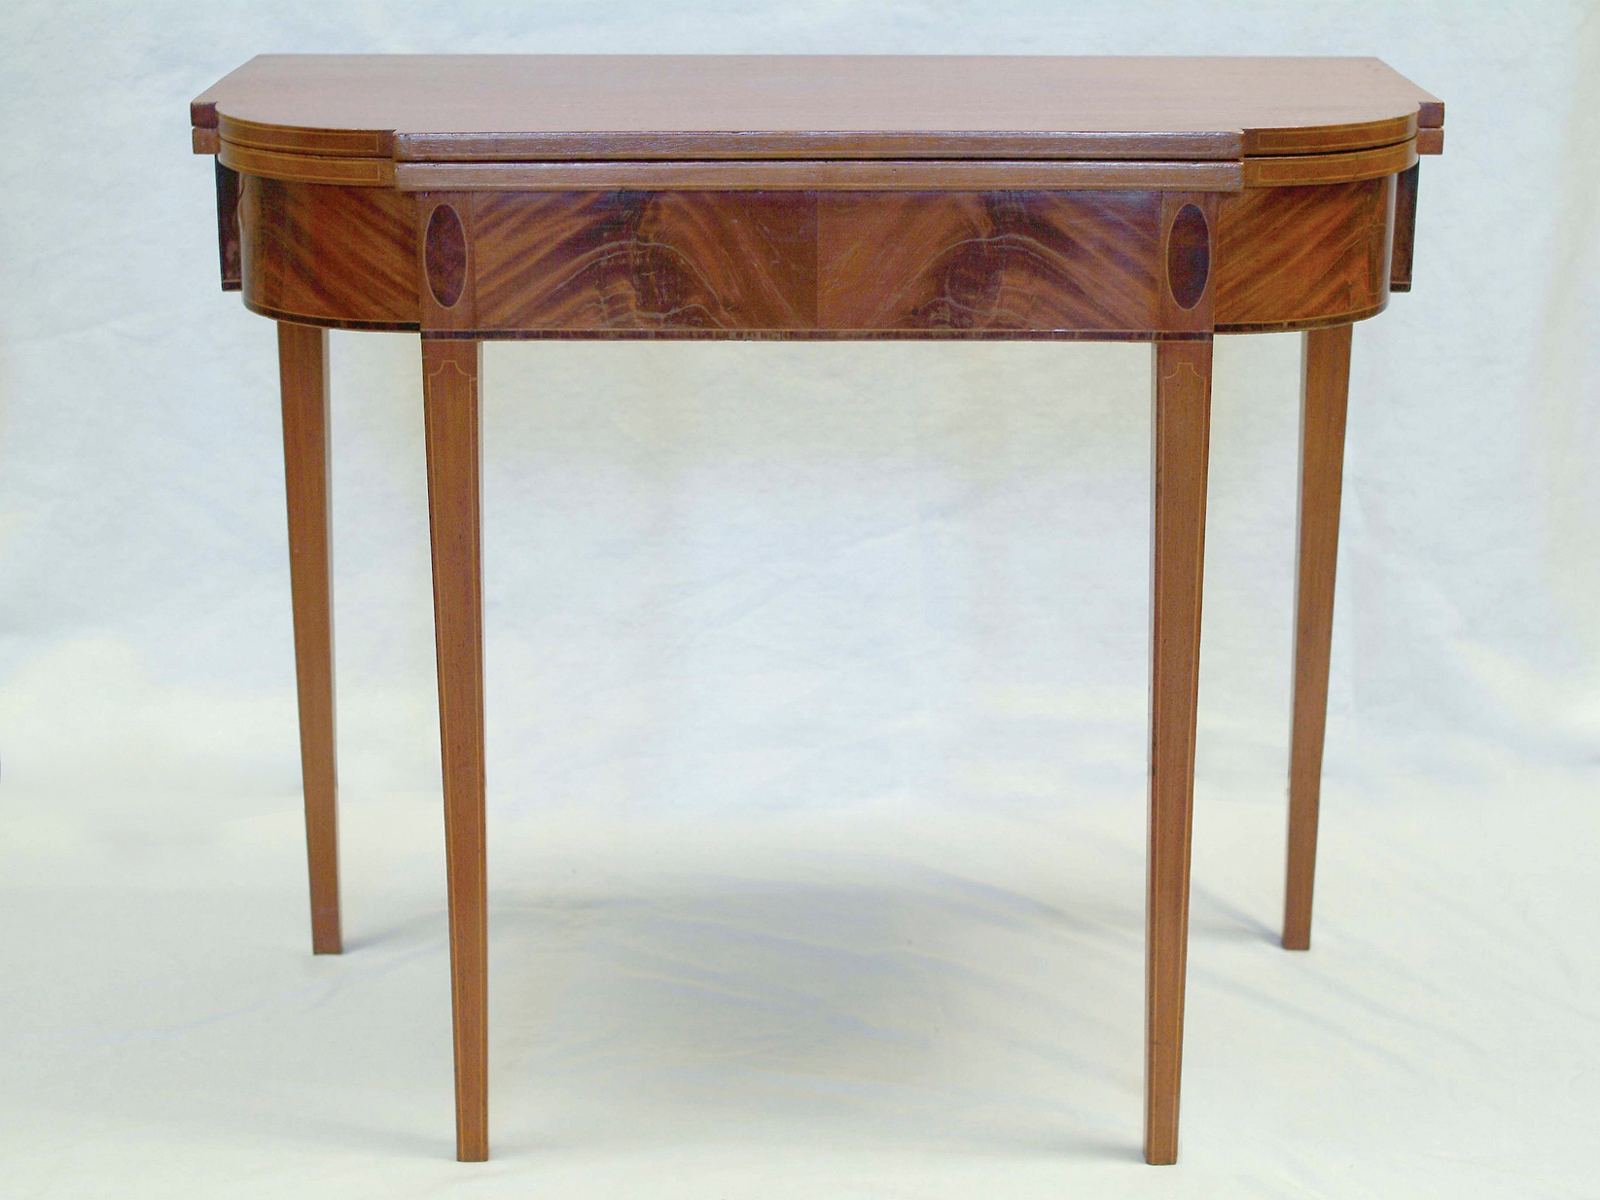 1796_frothingham_table1-1600x1200